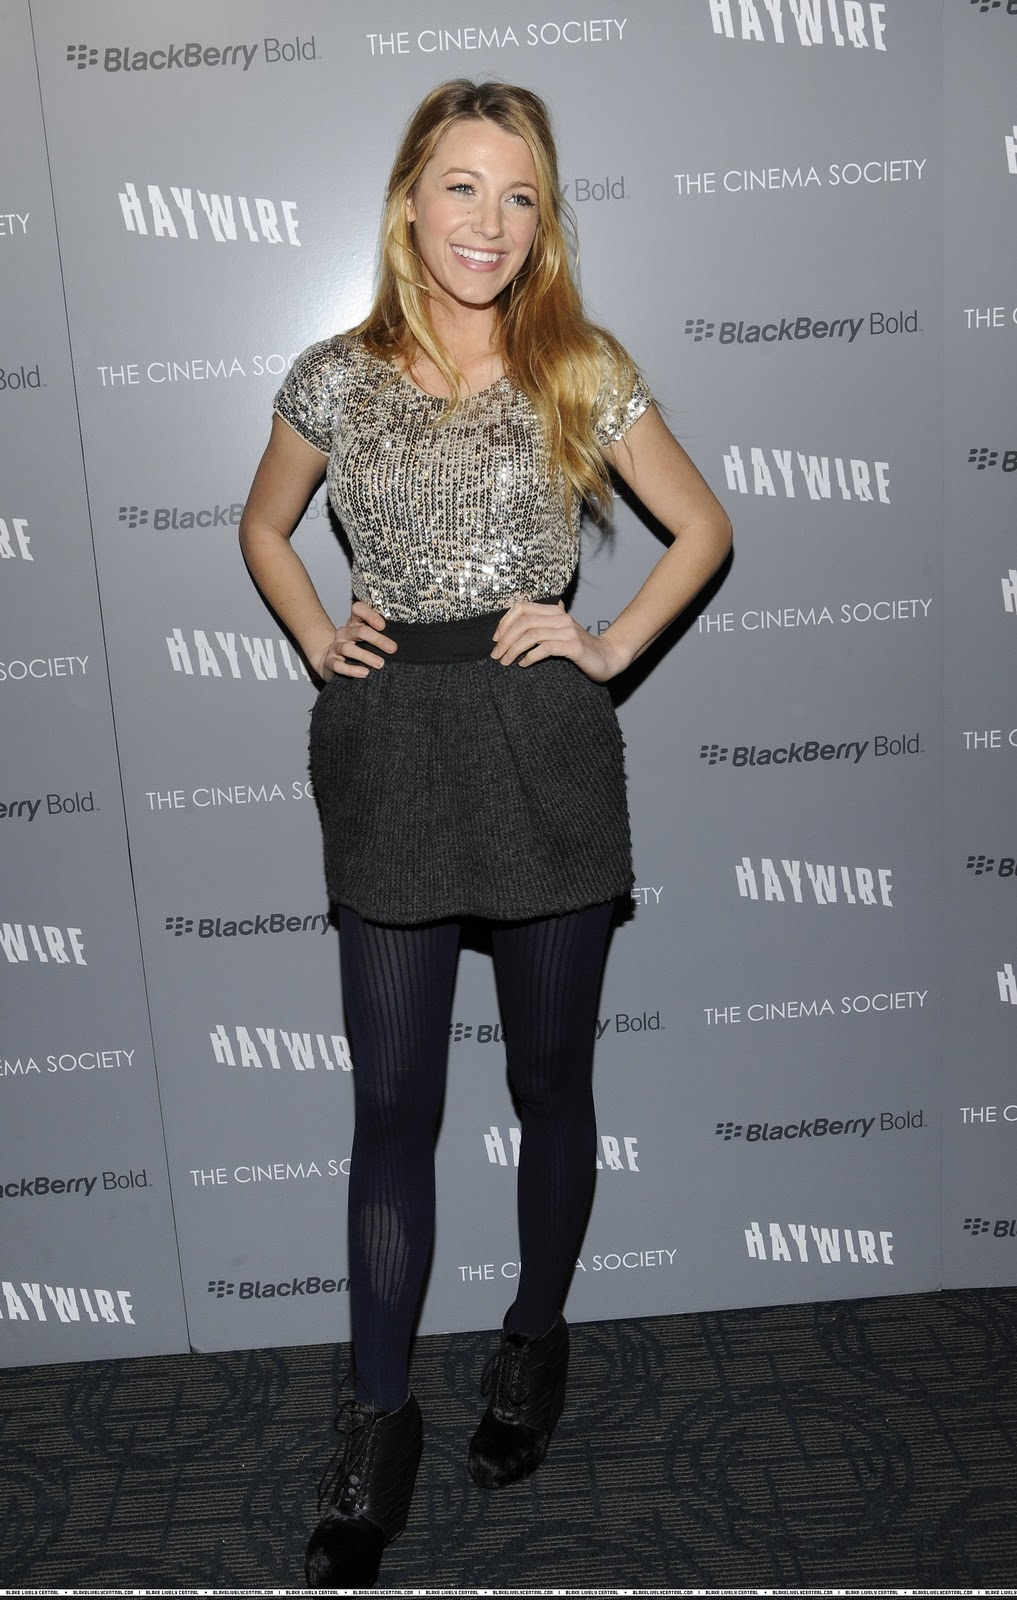 Blake Lively in in Dolce & Gabbana at an NYC screening of Haywire.